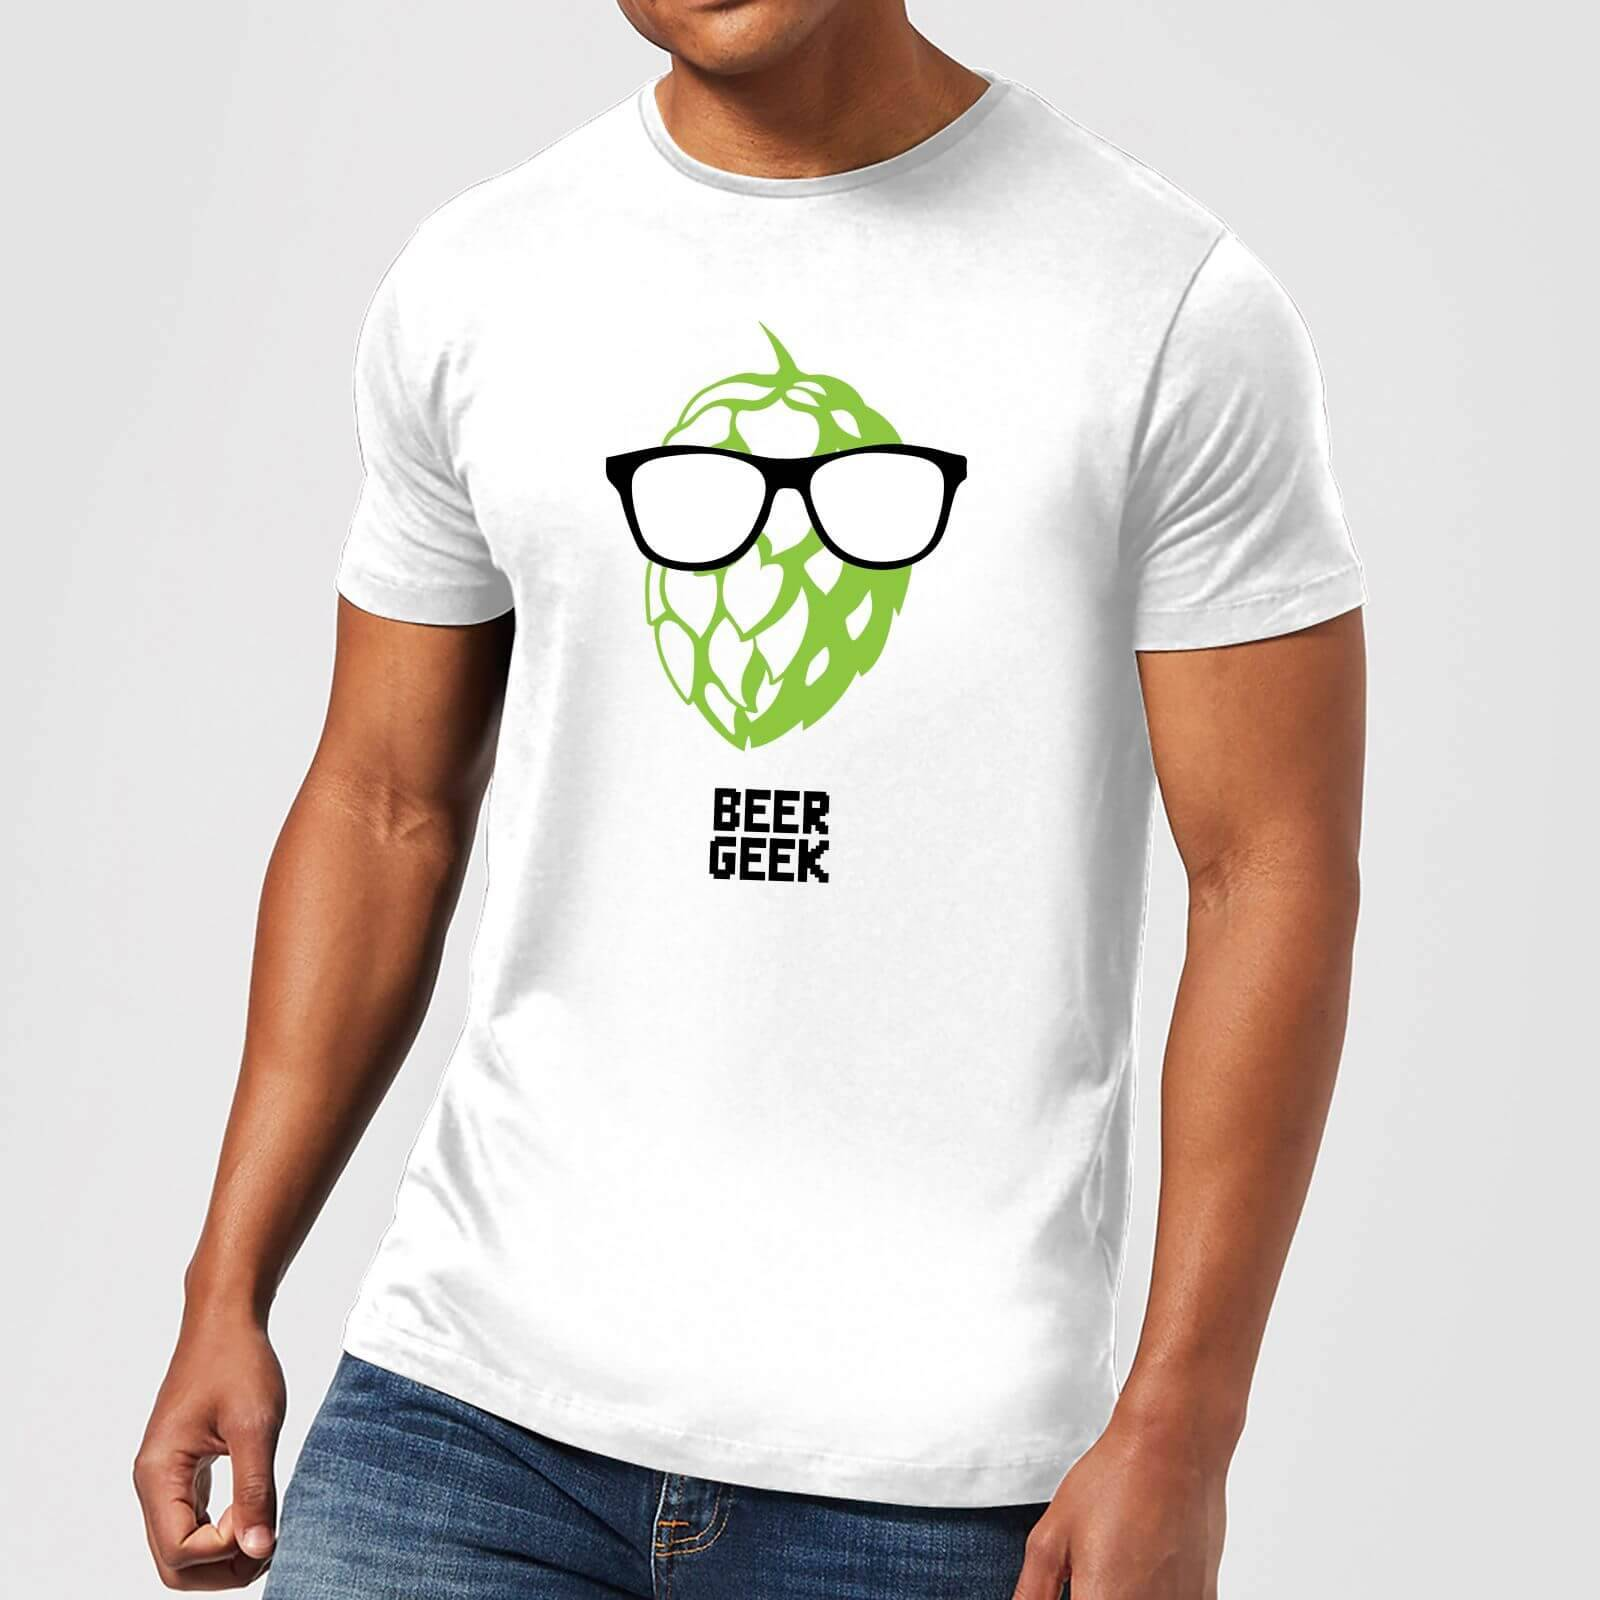 Beershield Beer Geek Men's T-Shirt - XL - White